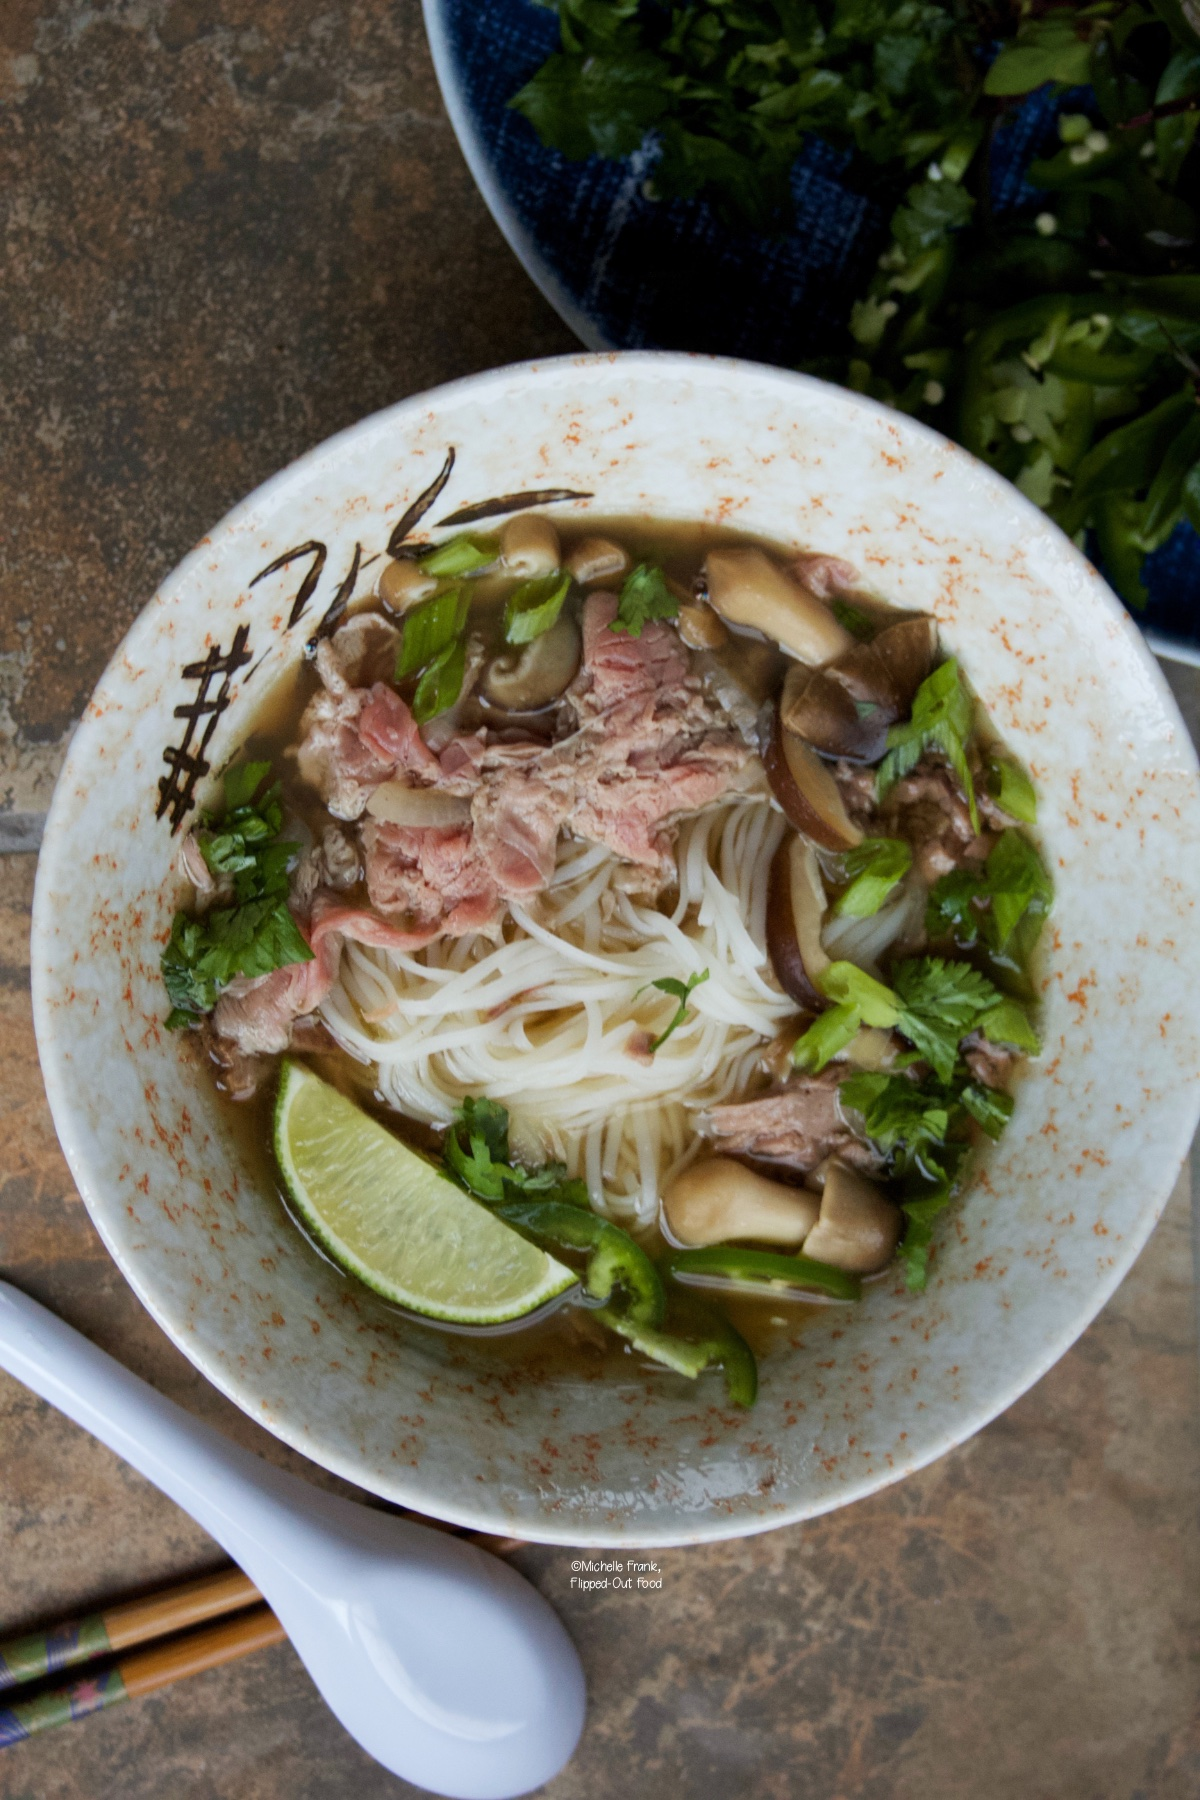 Real Deal Beef Pho Noodle Soup next to a soup spoon, chopsticks, and a platter of garnishes.